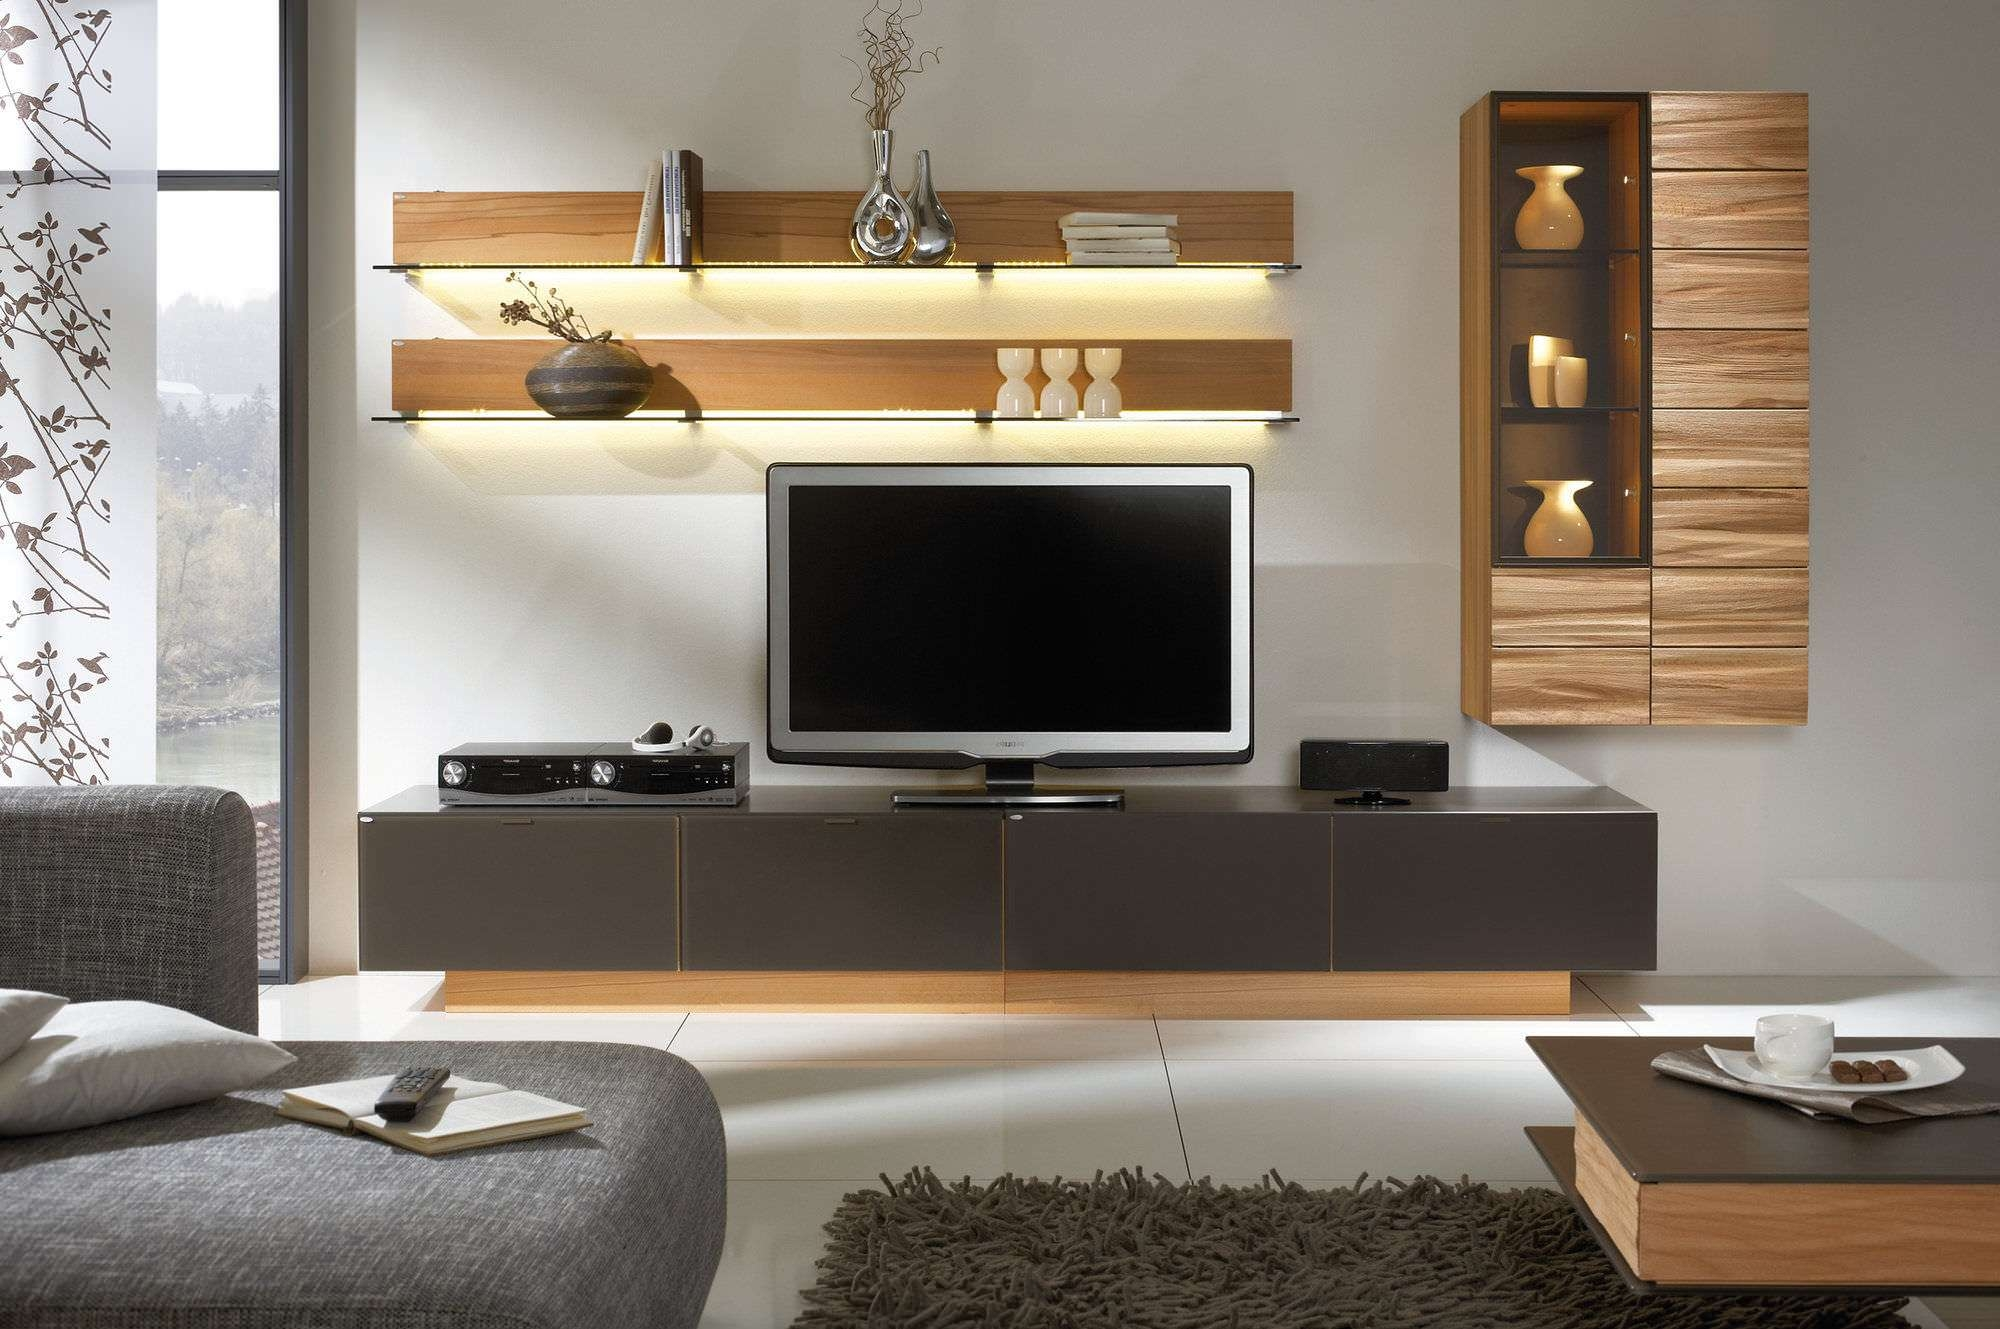 Ideas About Contemporary Tv Units Panel Trends Including Built In Within Modern Design Tv Cabinets (Gallery 7 of 20)